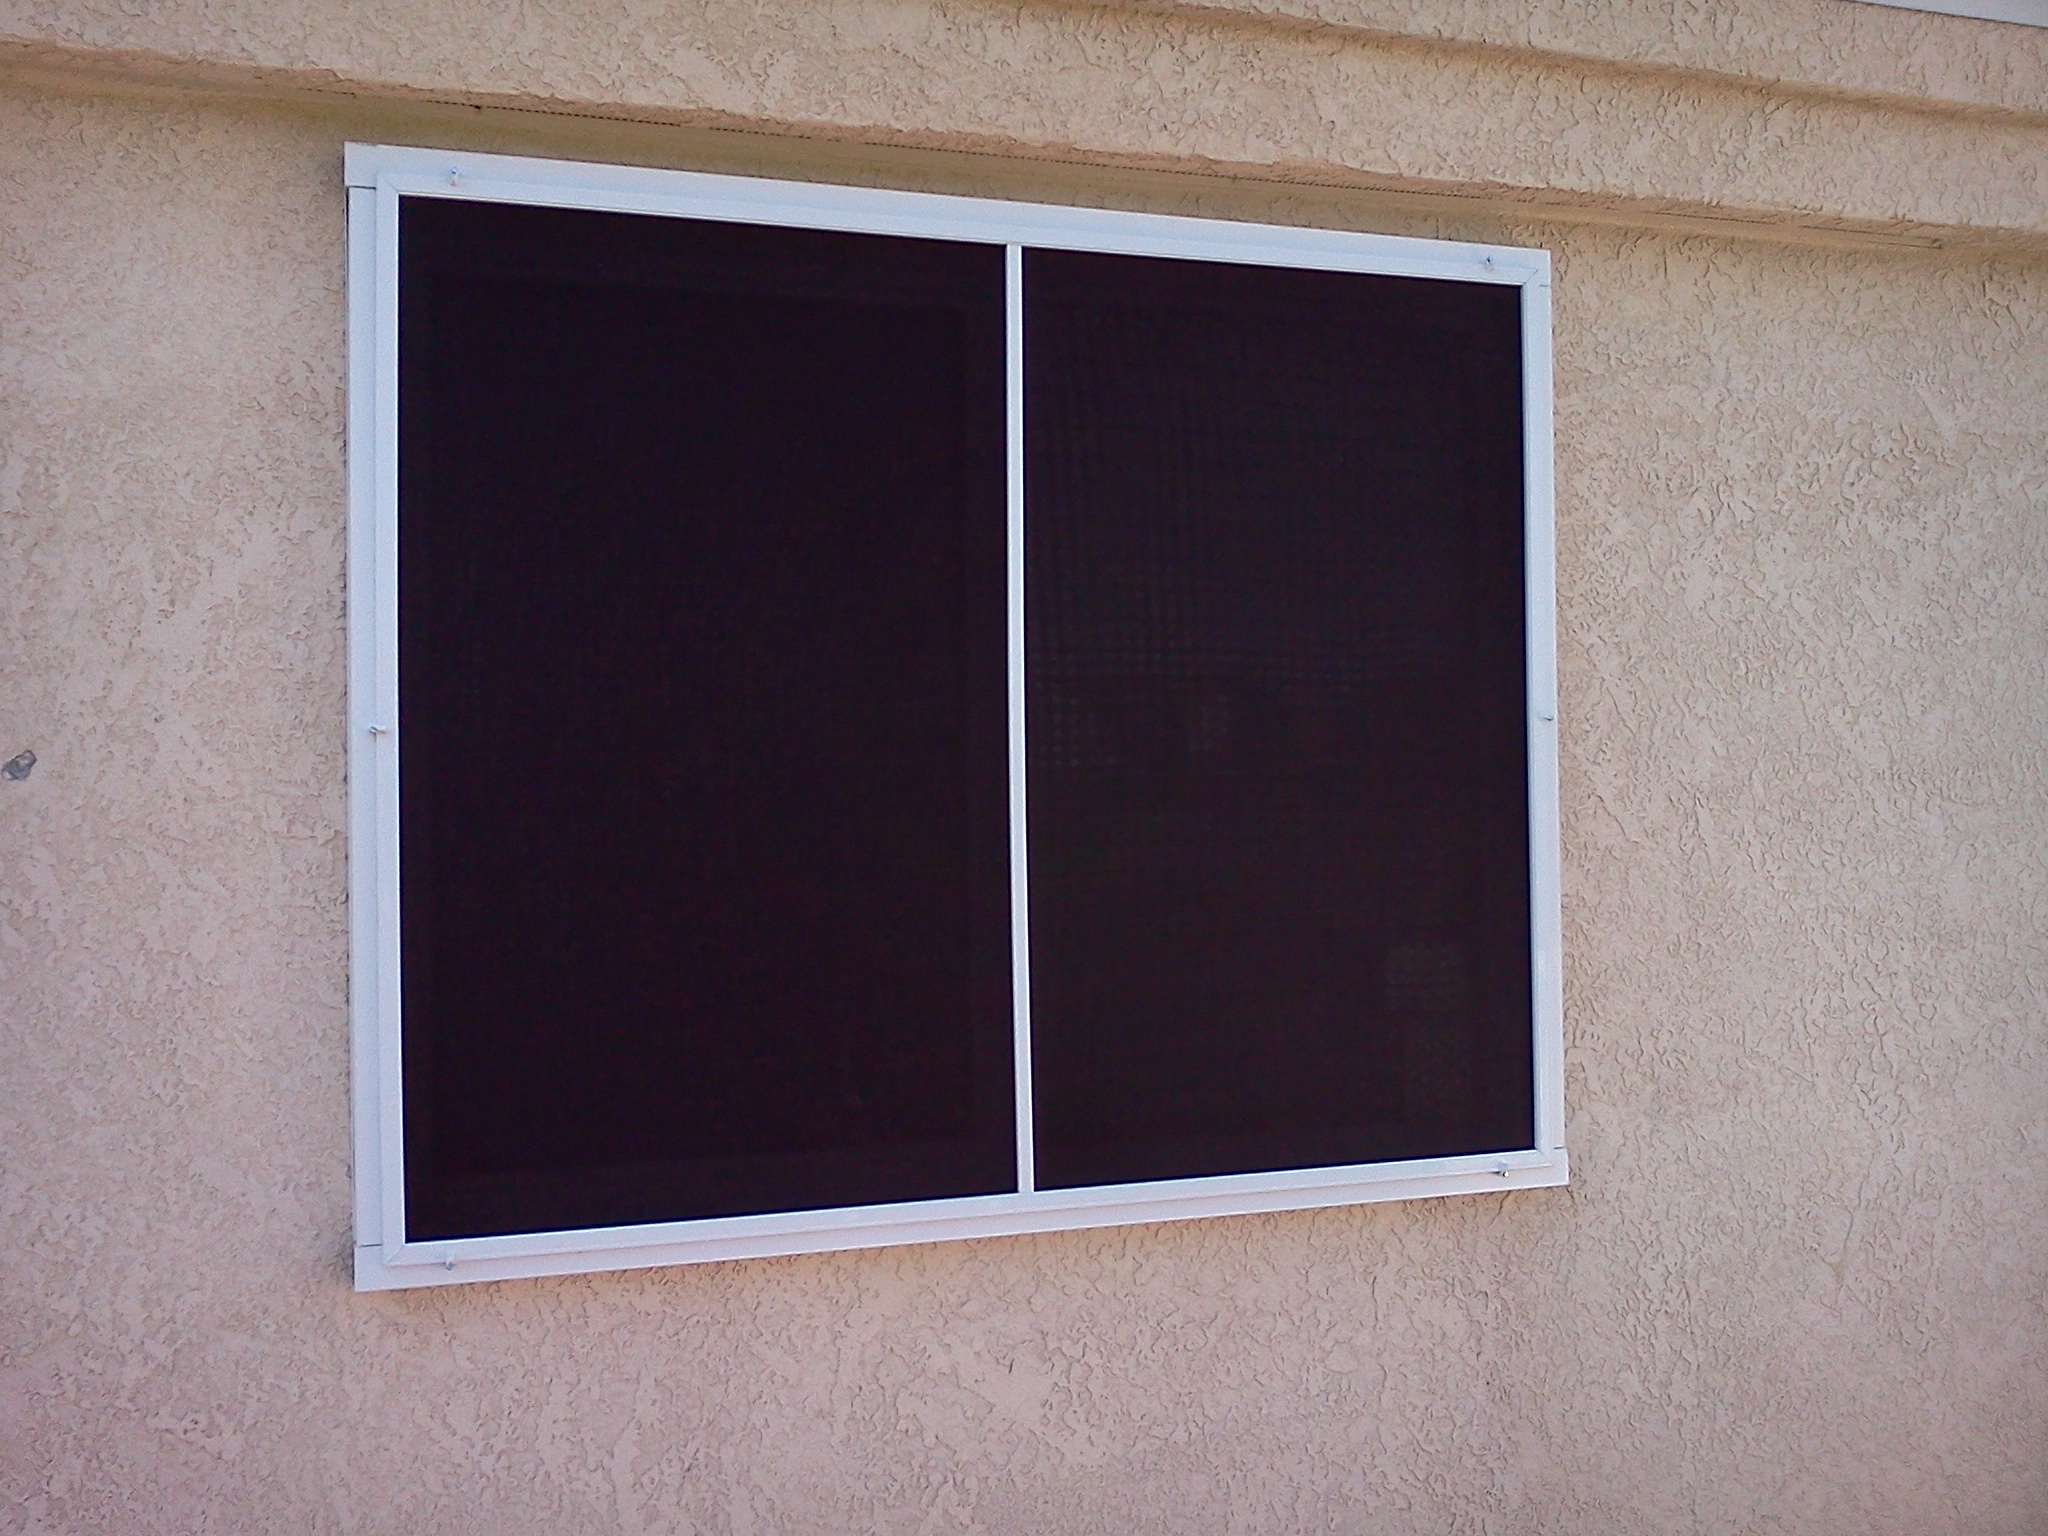 Screen It Can Design Custom Built Screens That Protect Your Windows From Golf Ball Damage We Were The First To And Fabricate These Types Of